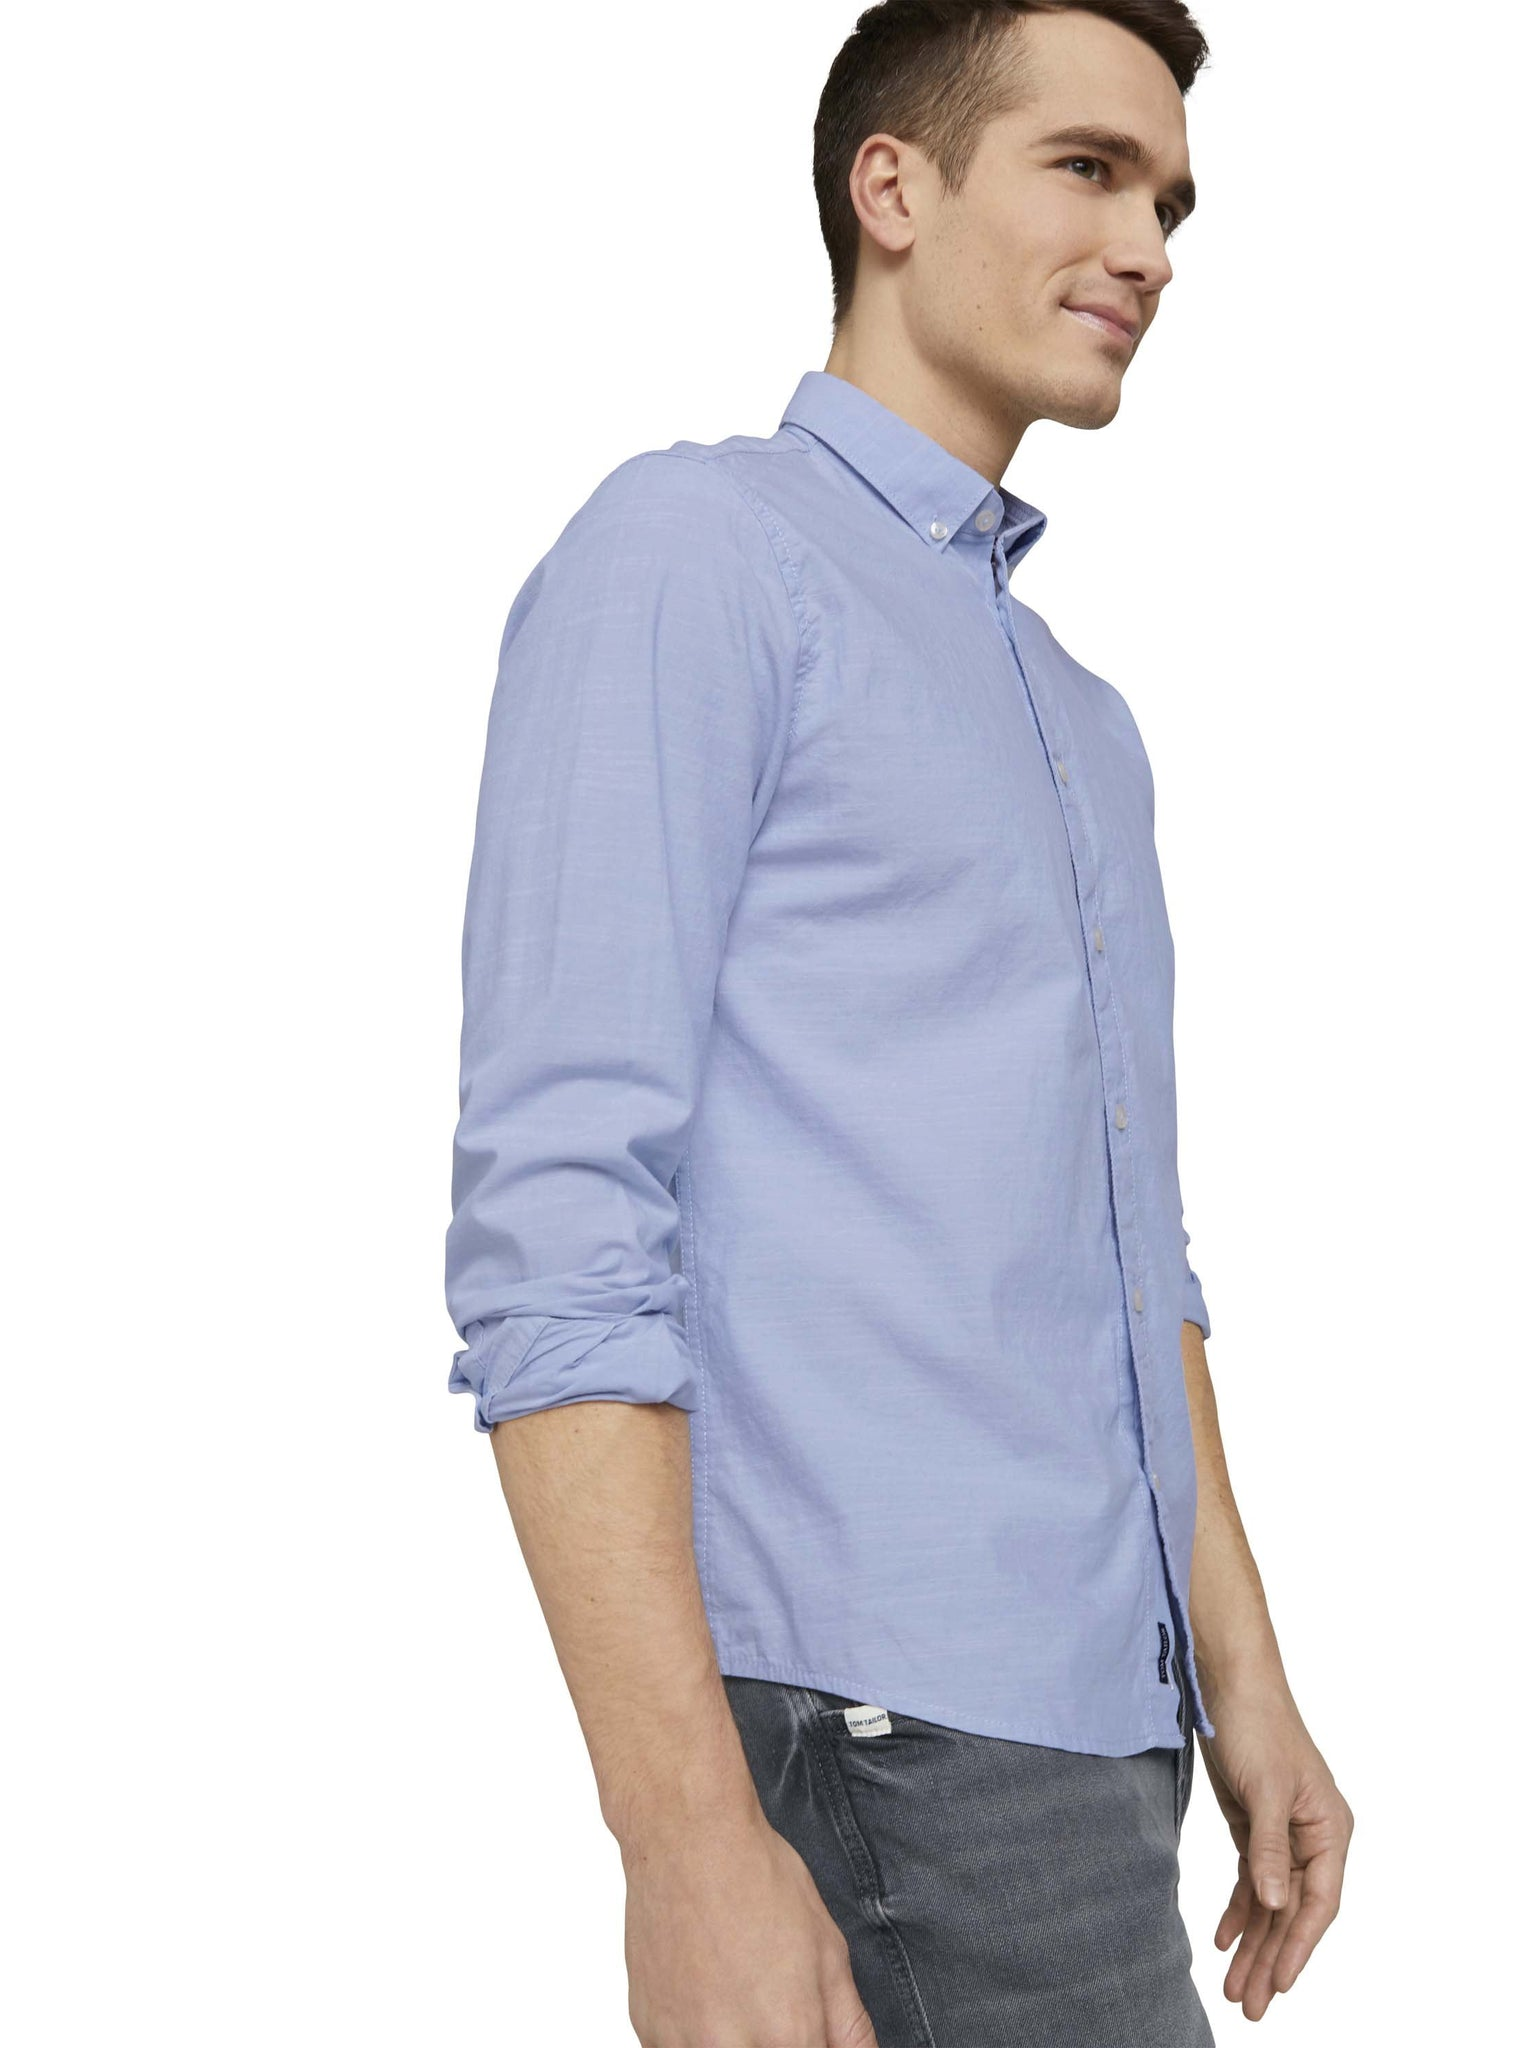 Tom Tailor smart shirt blue 1024750